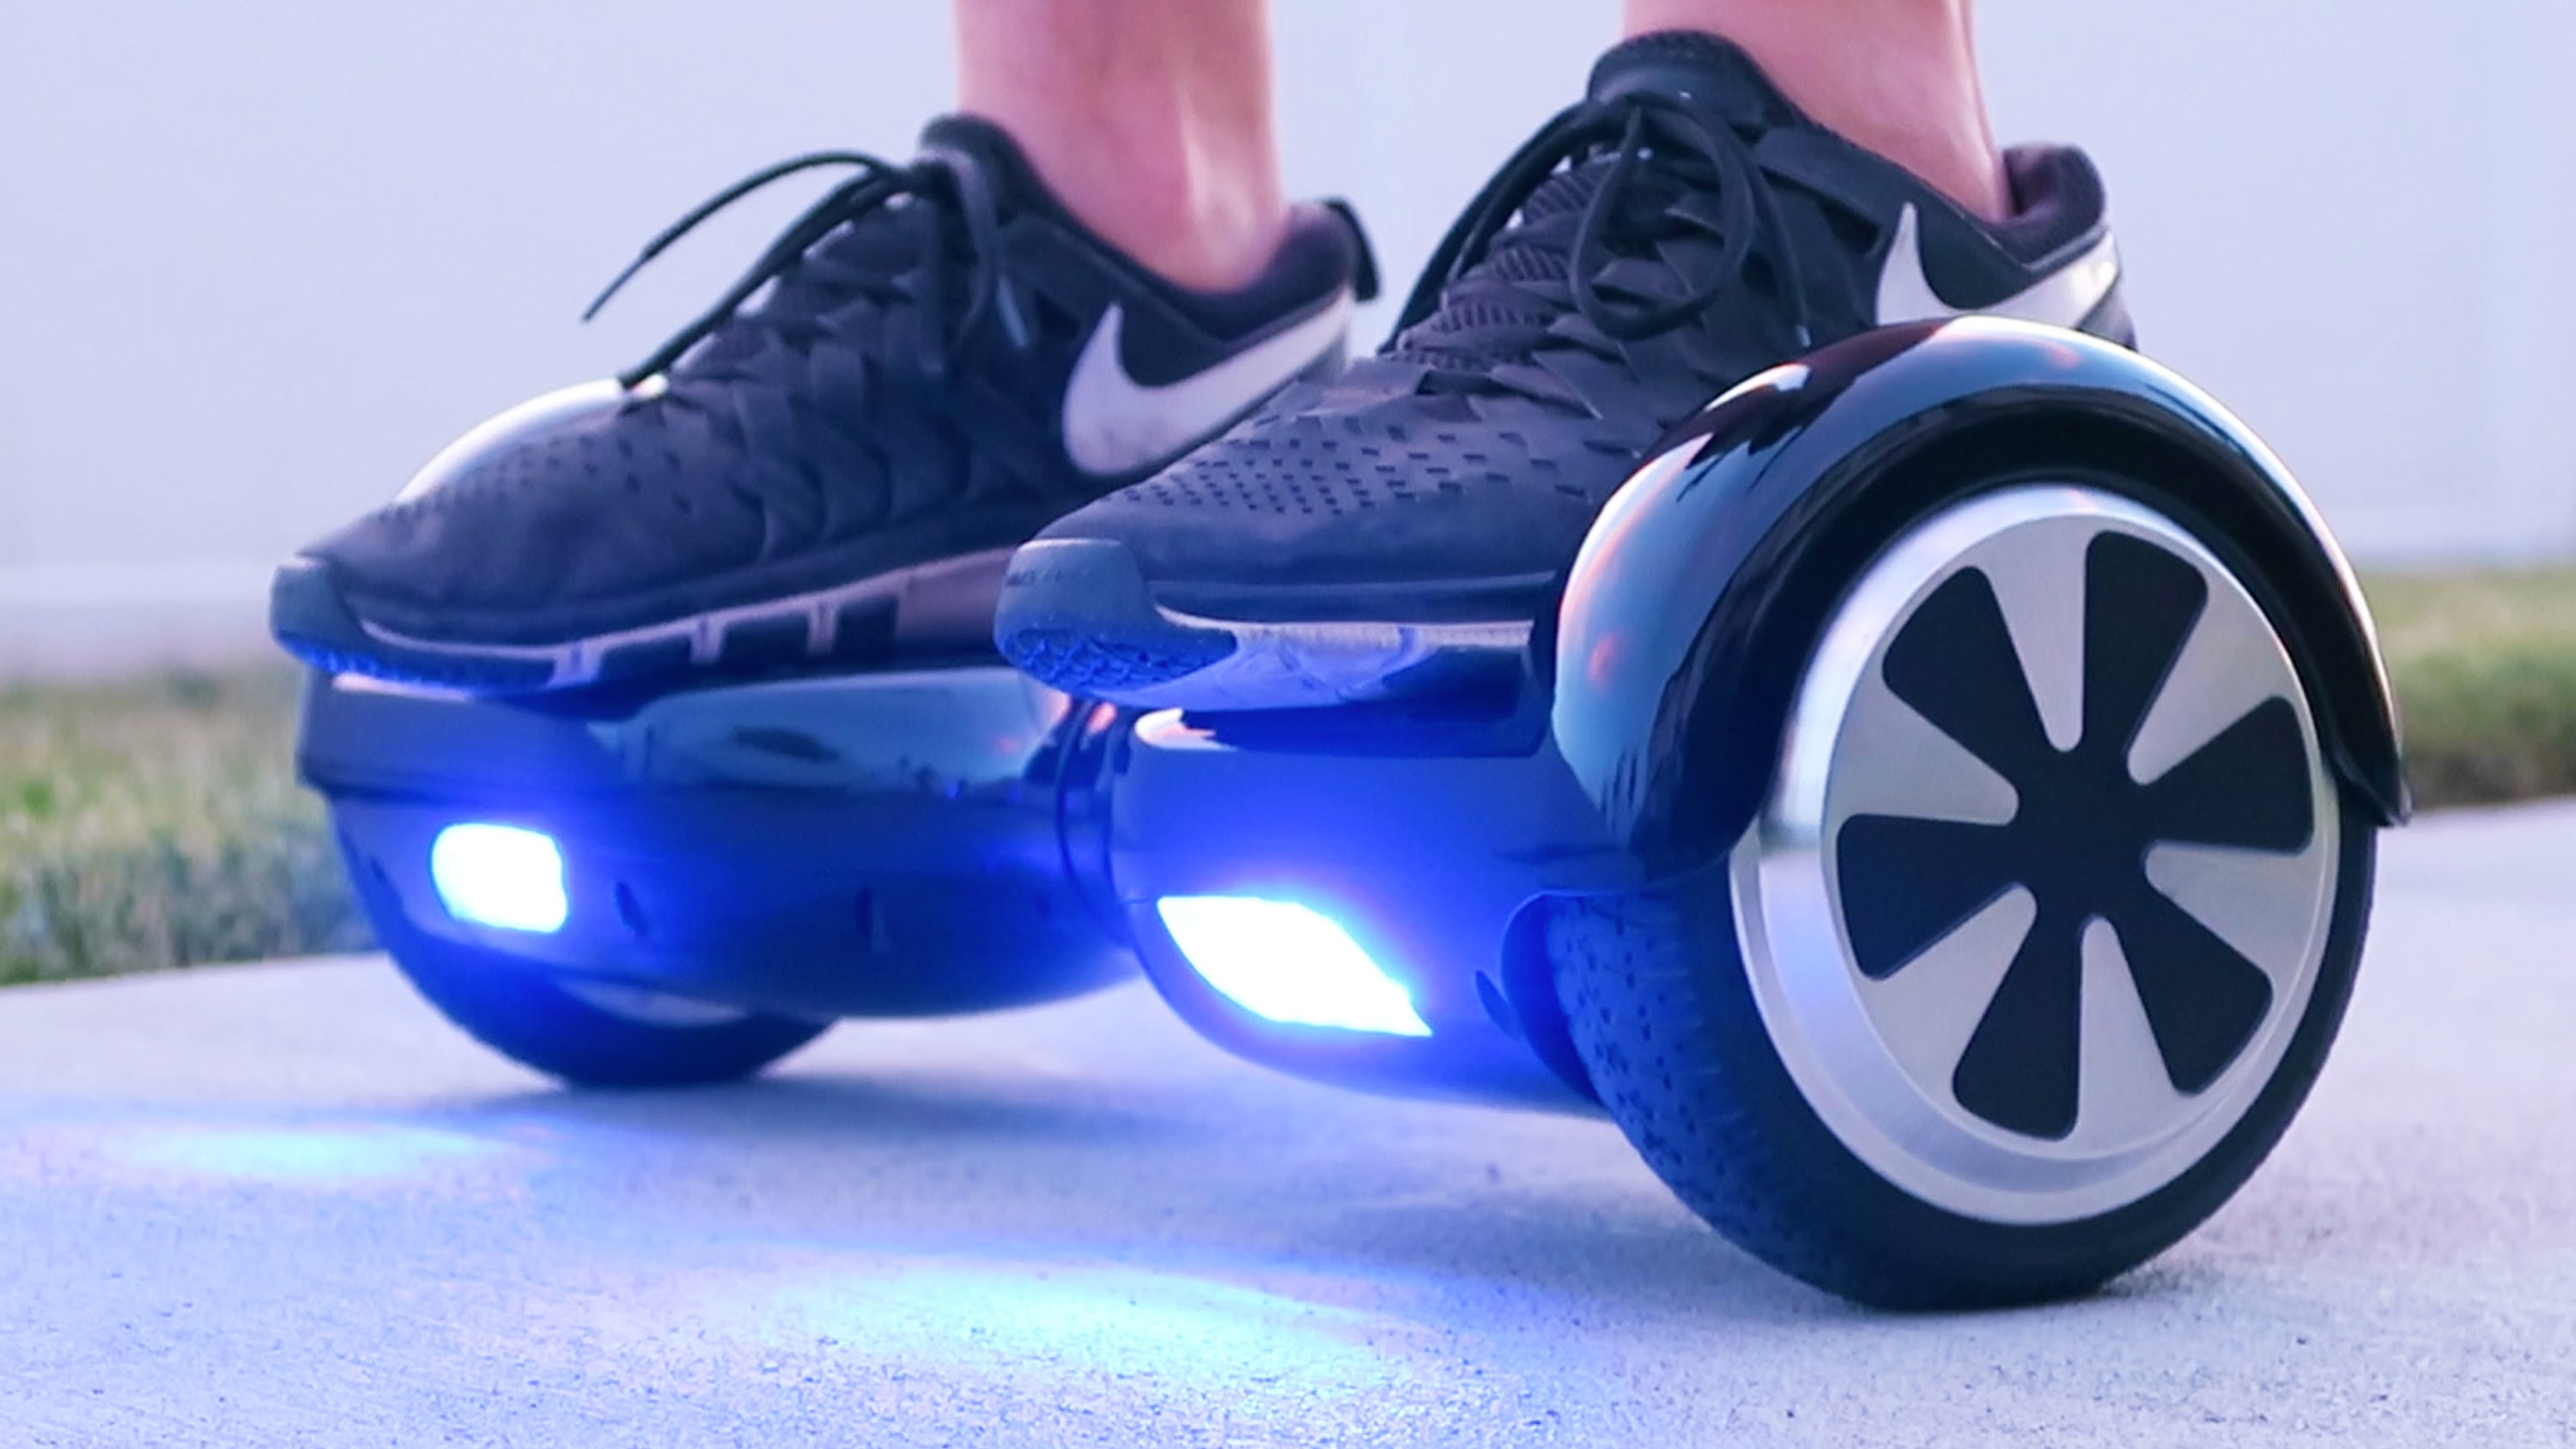 Hoverboard & Airboards